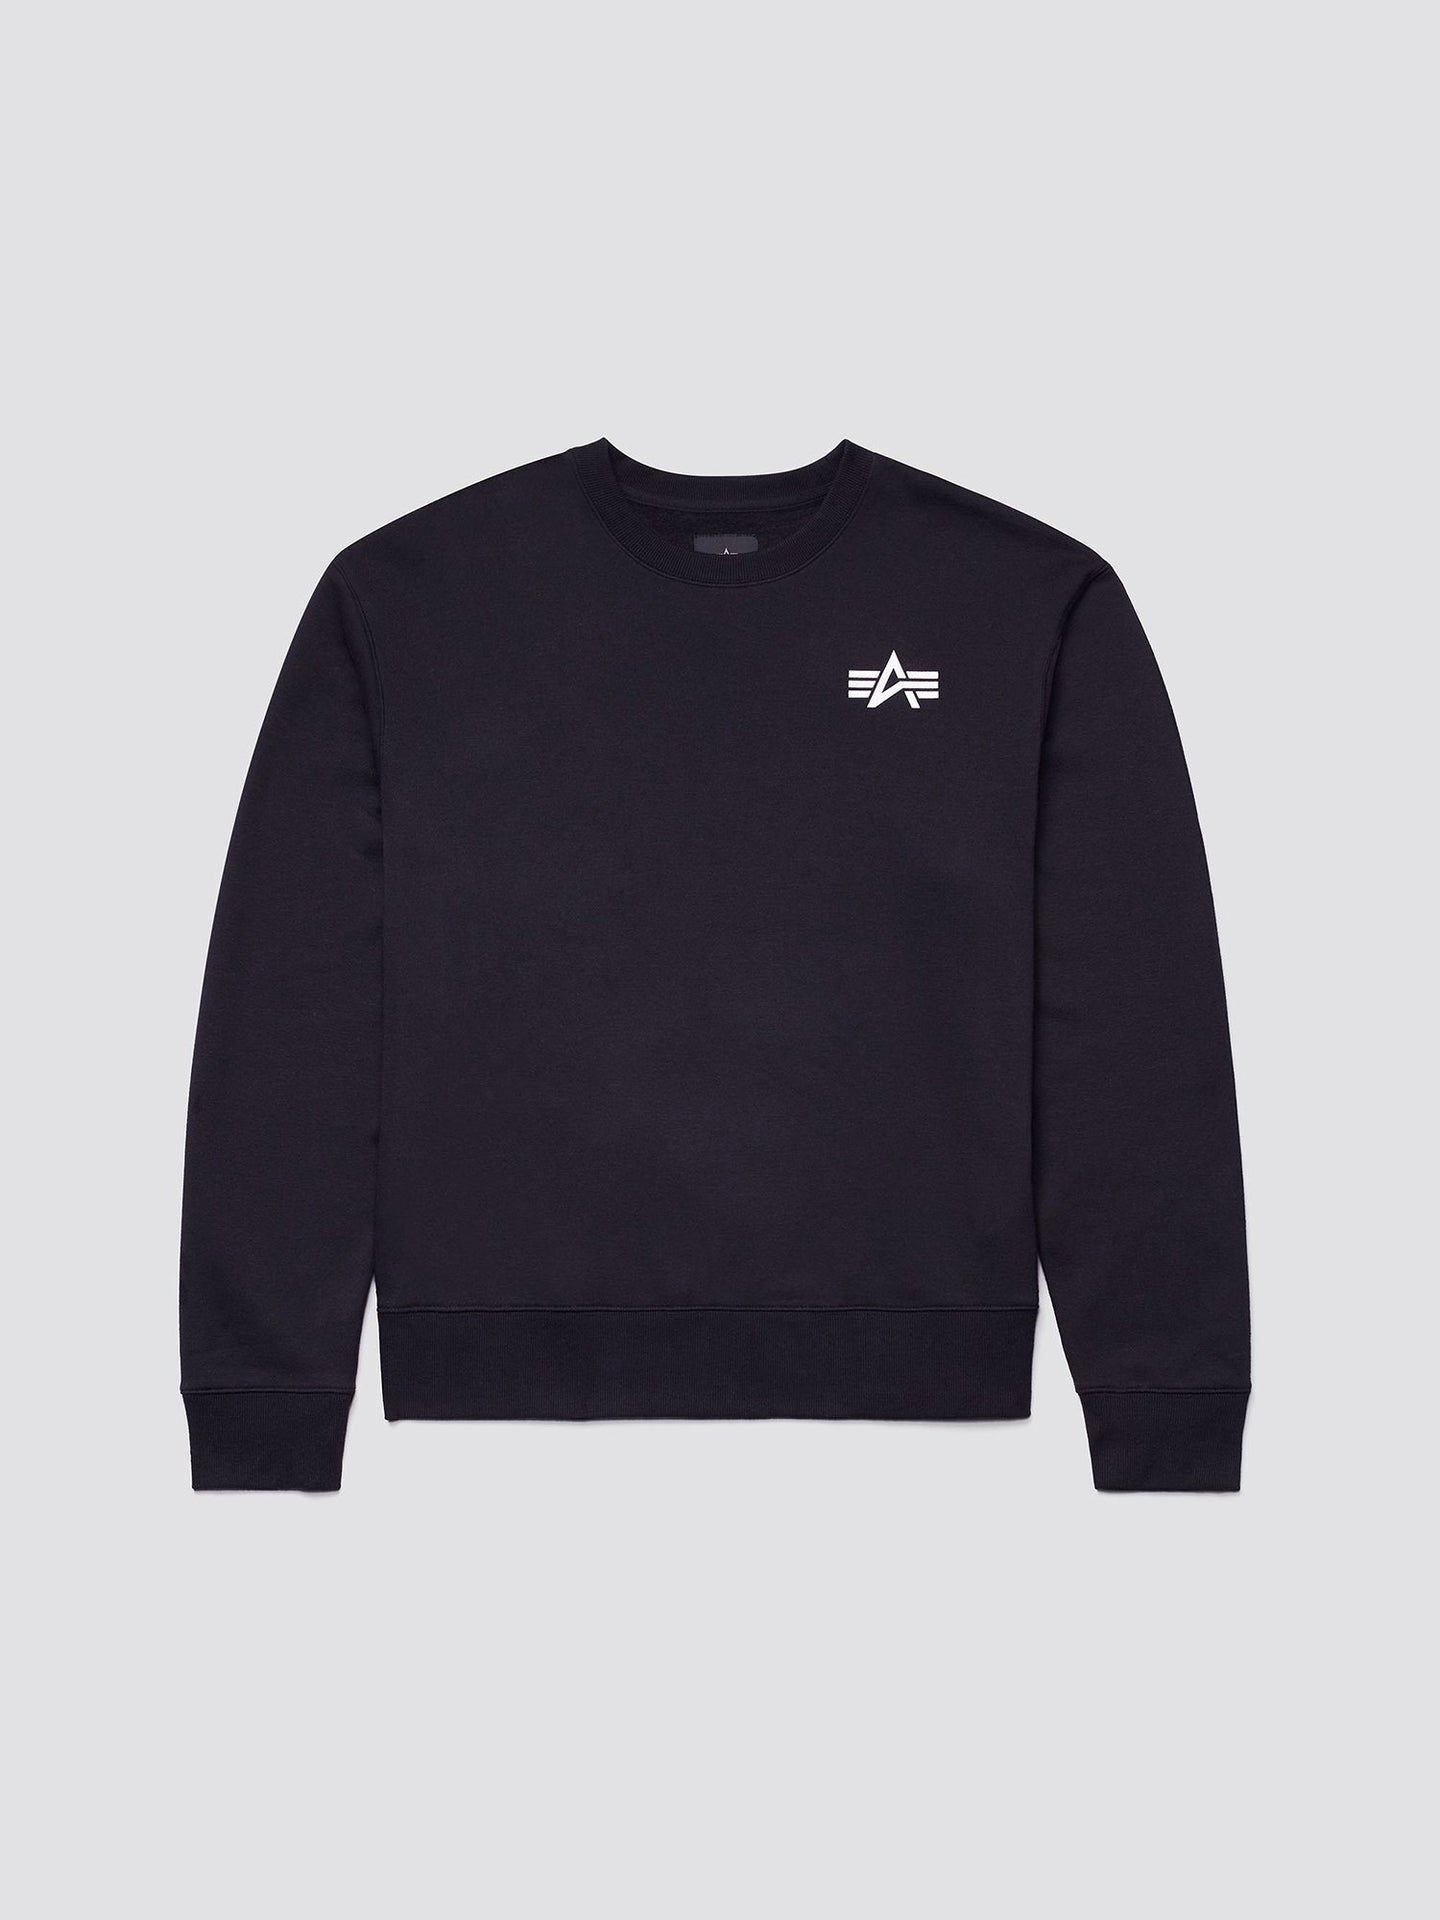 SMALL LOGO CREWNECK SWEATSHIRT TOP Alpha Industries BLACK 2XL